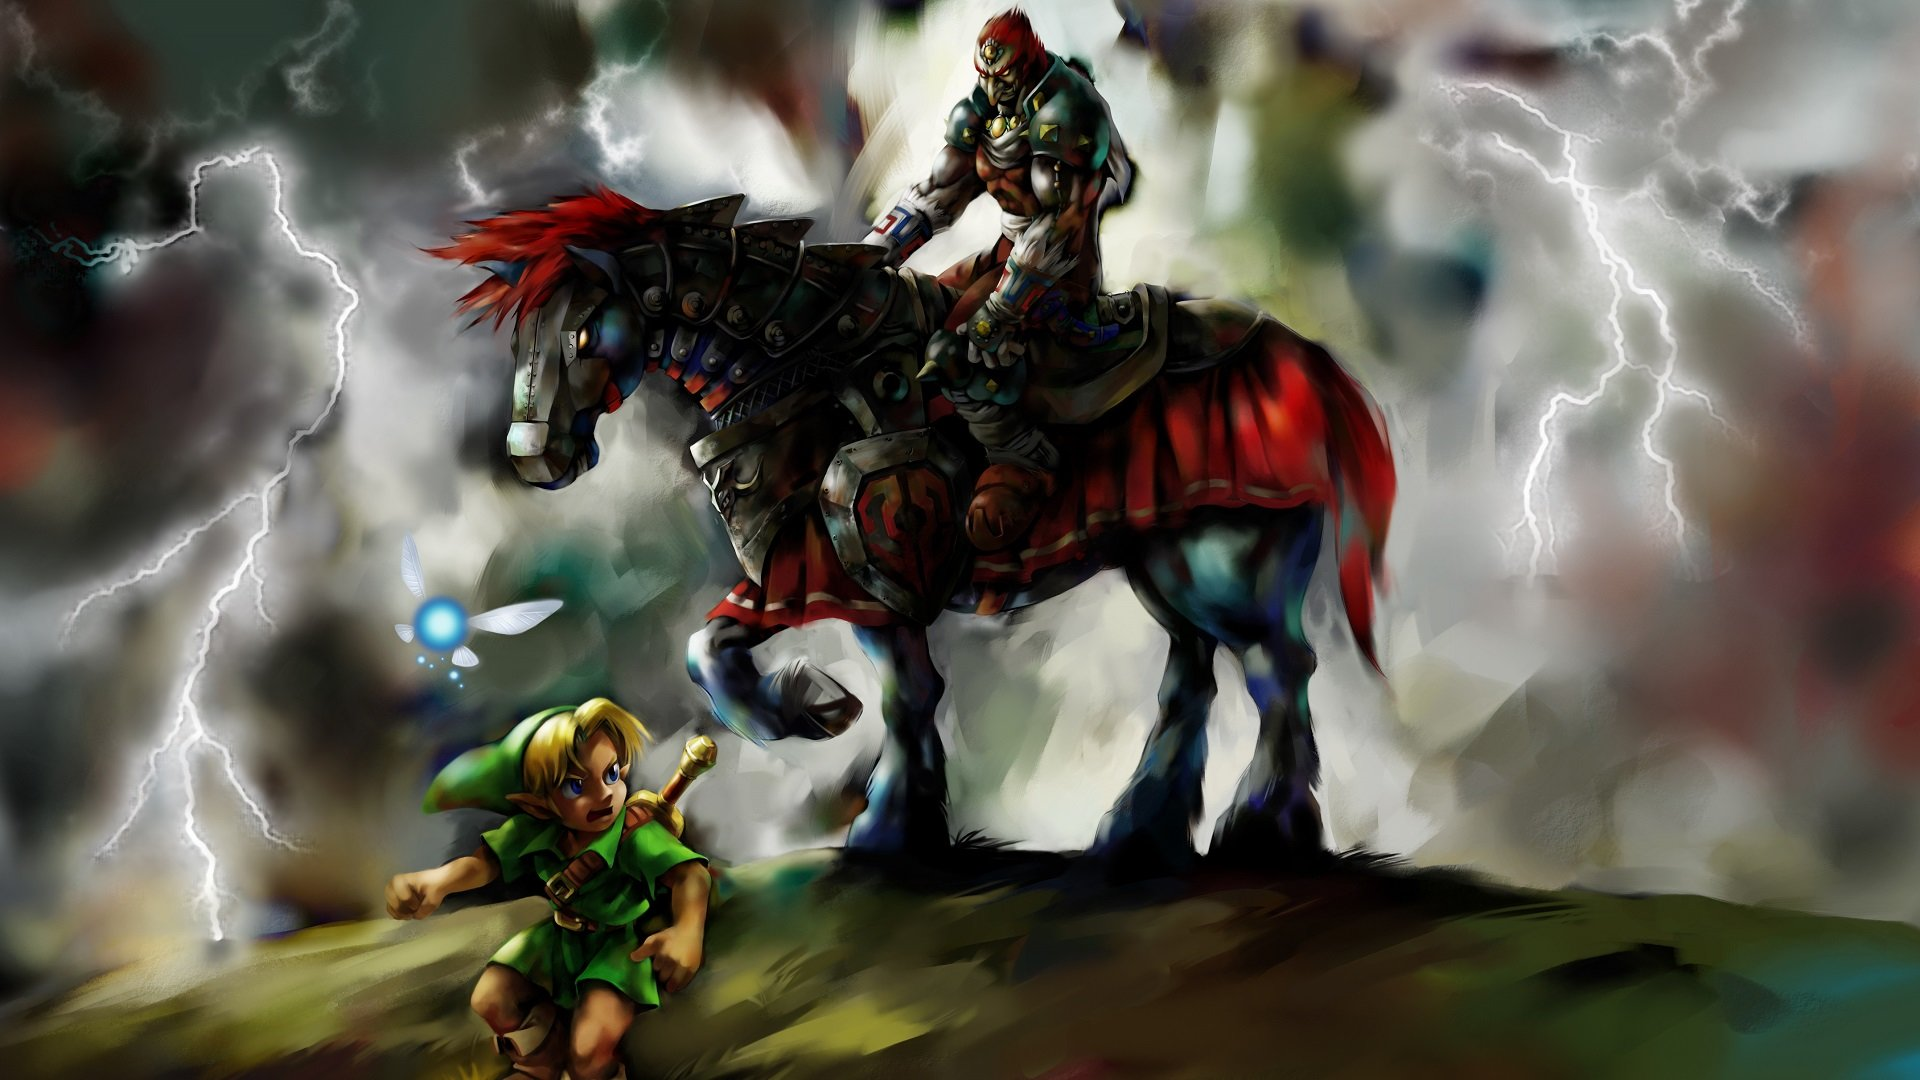 The Legend Of Zelda Ocarina Of Time Wallpapers Hd For Desktop